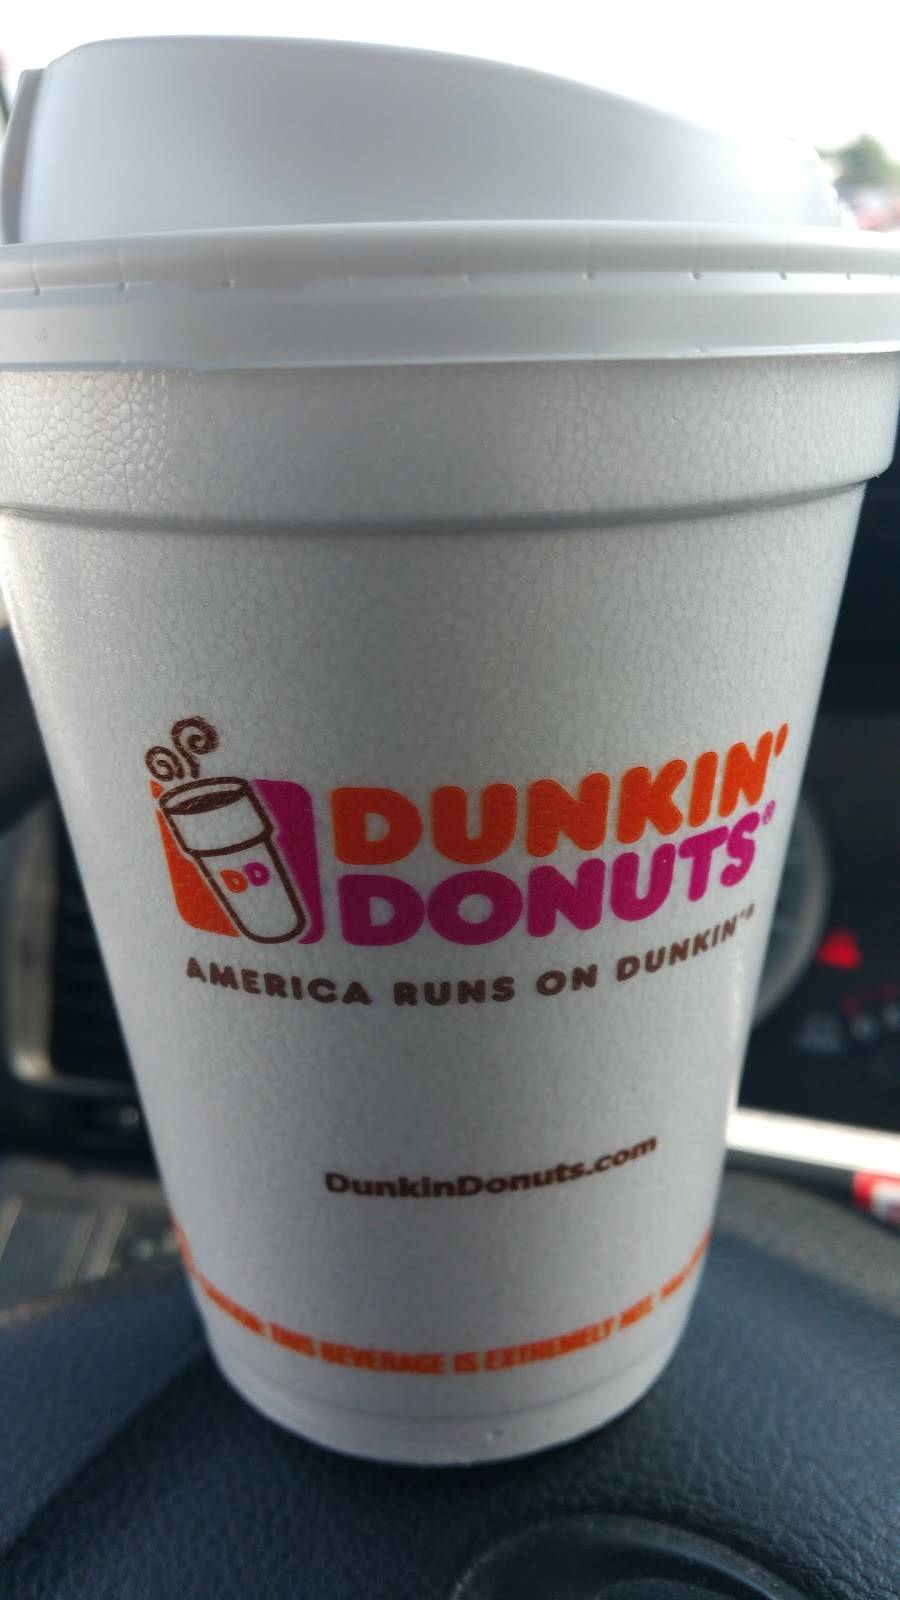 Dunkin Donuts | cafe | 7401 Tonnelle Ave, North Bergen, NJ 07047, USA | 2018685265 OR +1 201-868-5265